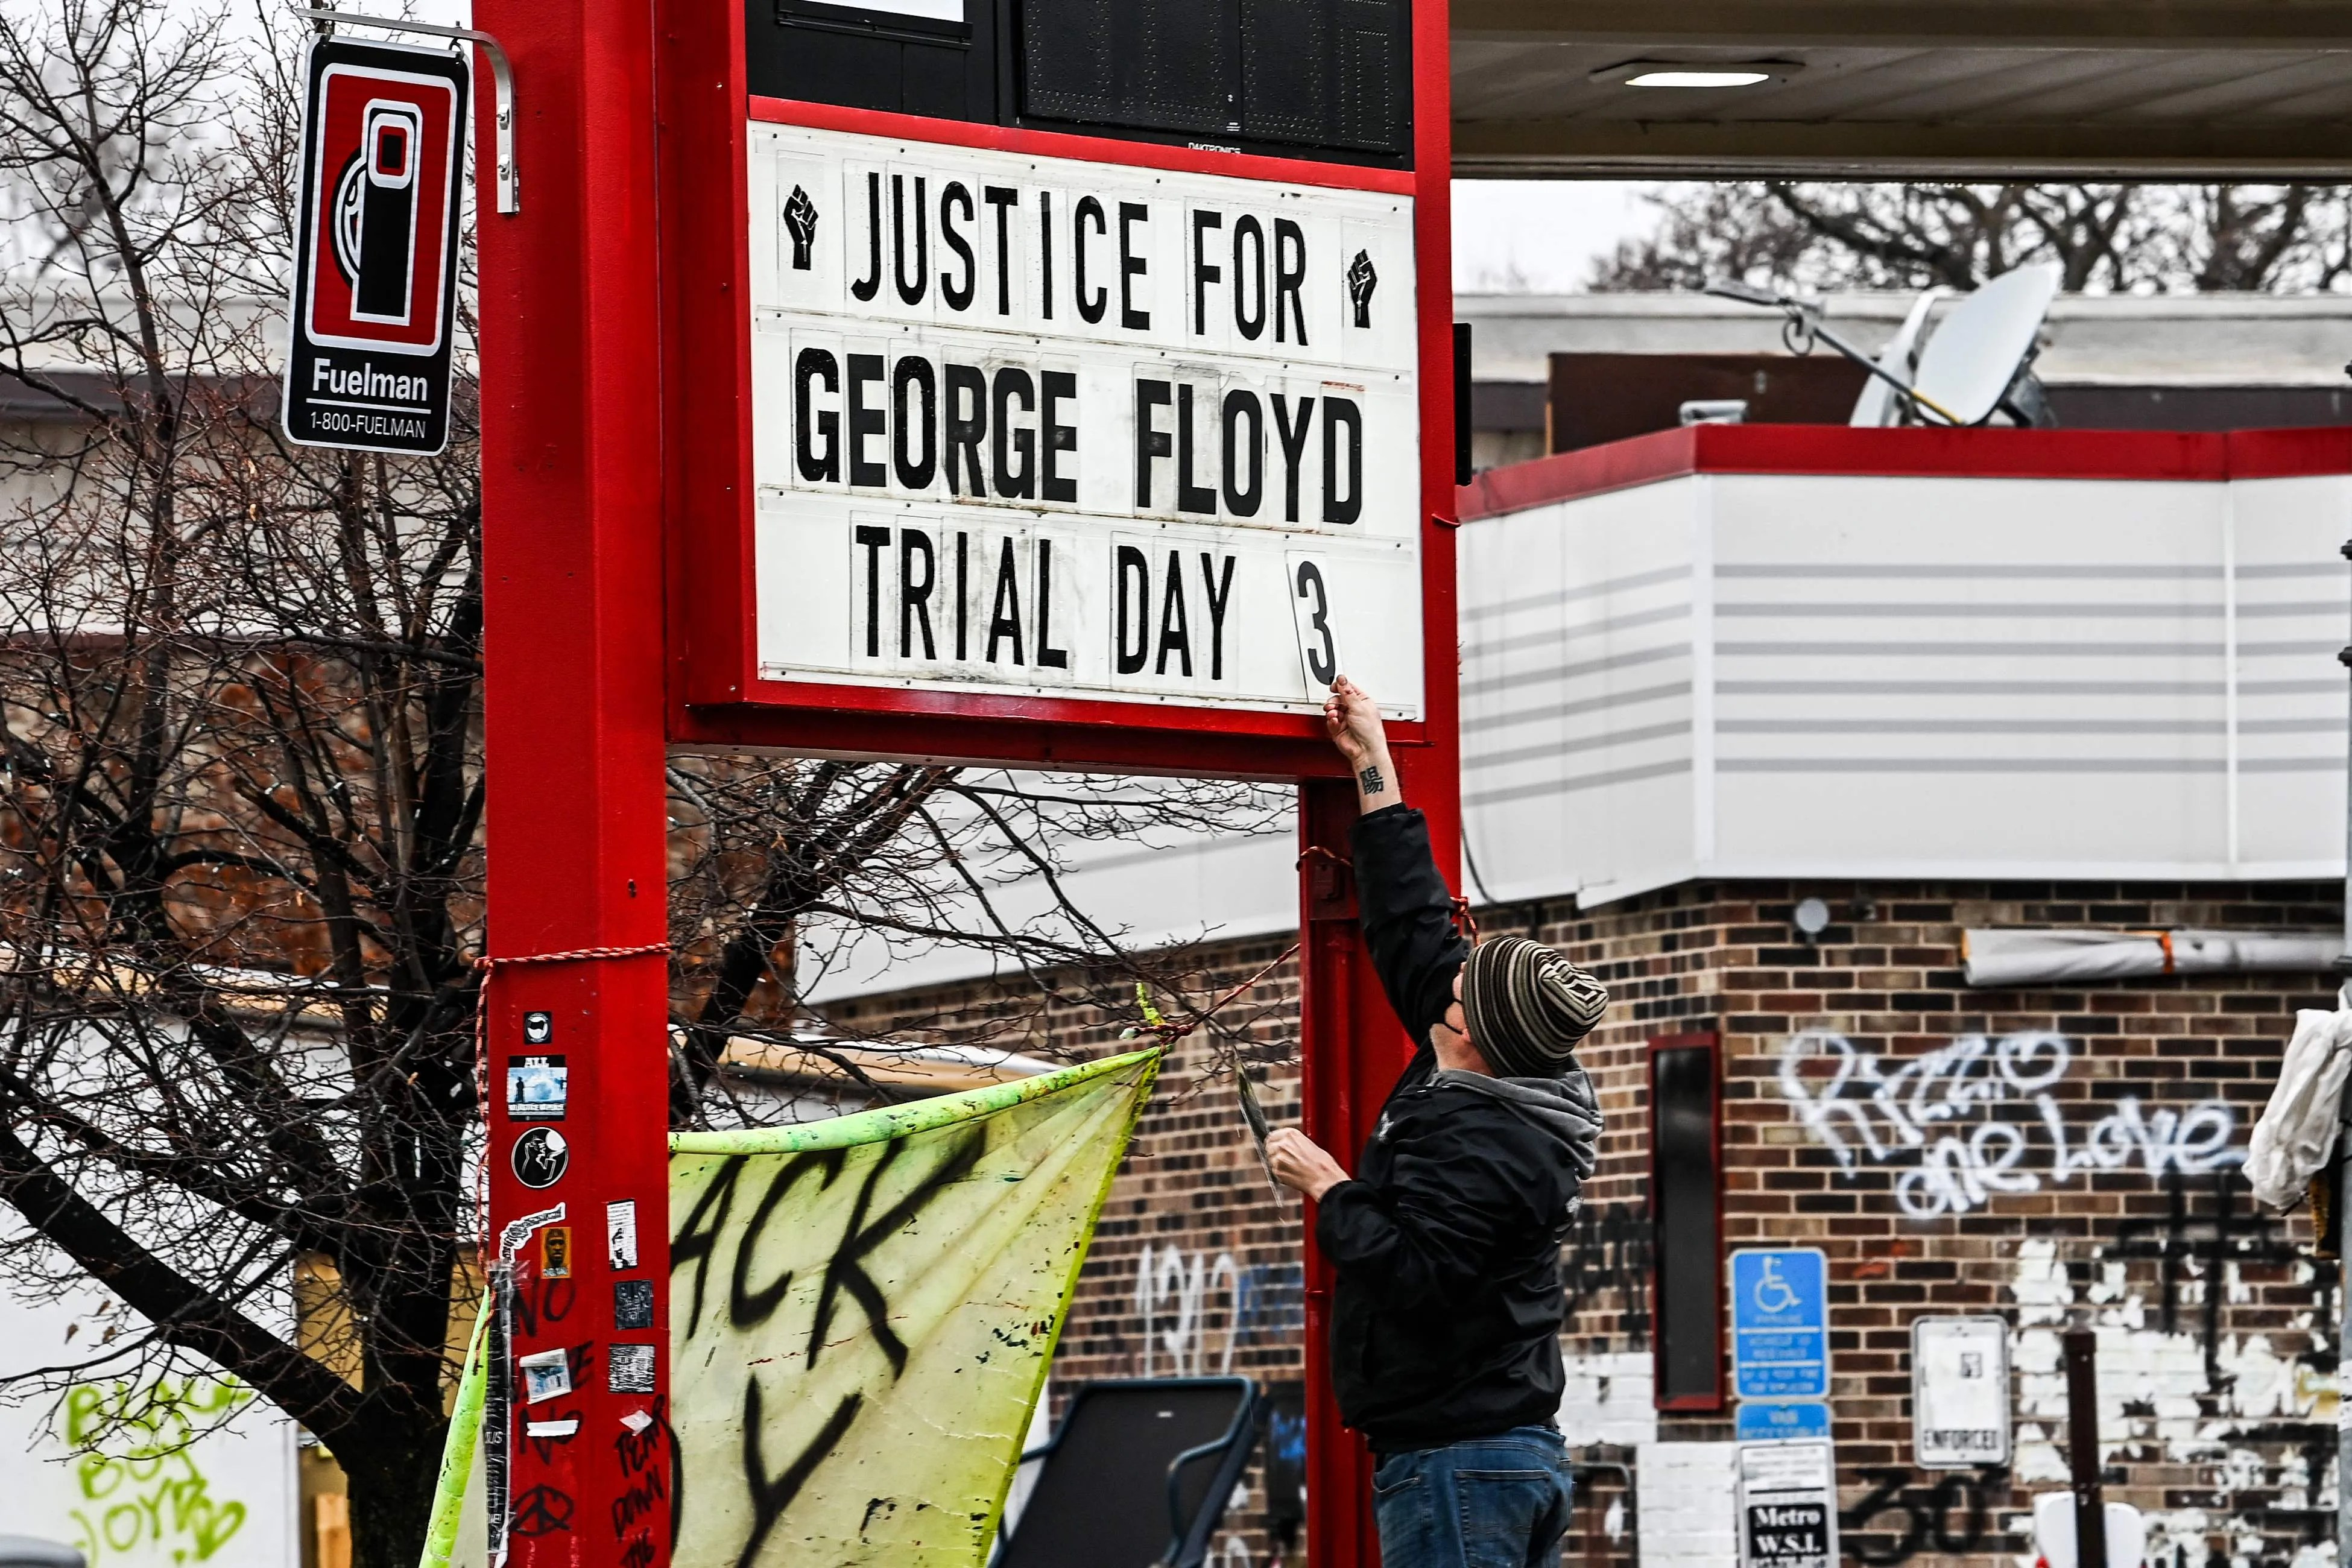 A man changes the number of a sign board at a makeshift memorial of George Floyd before the third day of jury selection begins in the trial of former Minneapolis Police officer Derek Chauvin who is accused of killing Floyd, in Minneapolis, Minnesota on March 10, 2021.